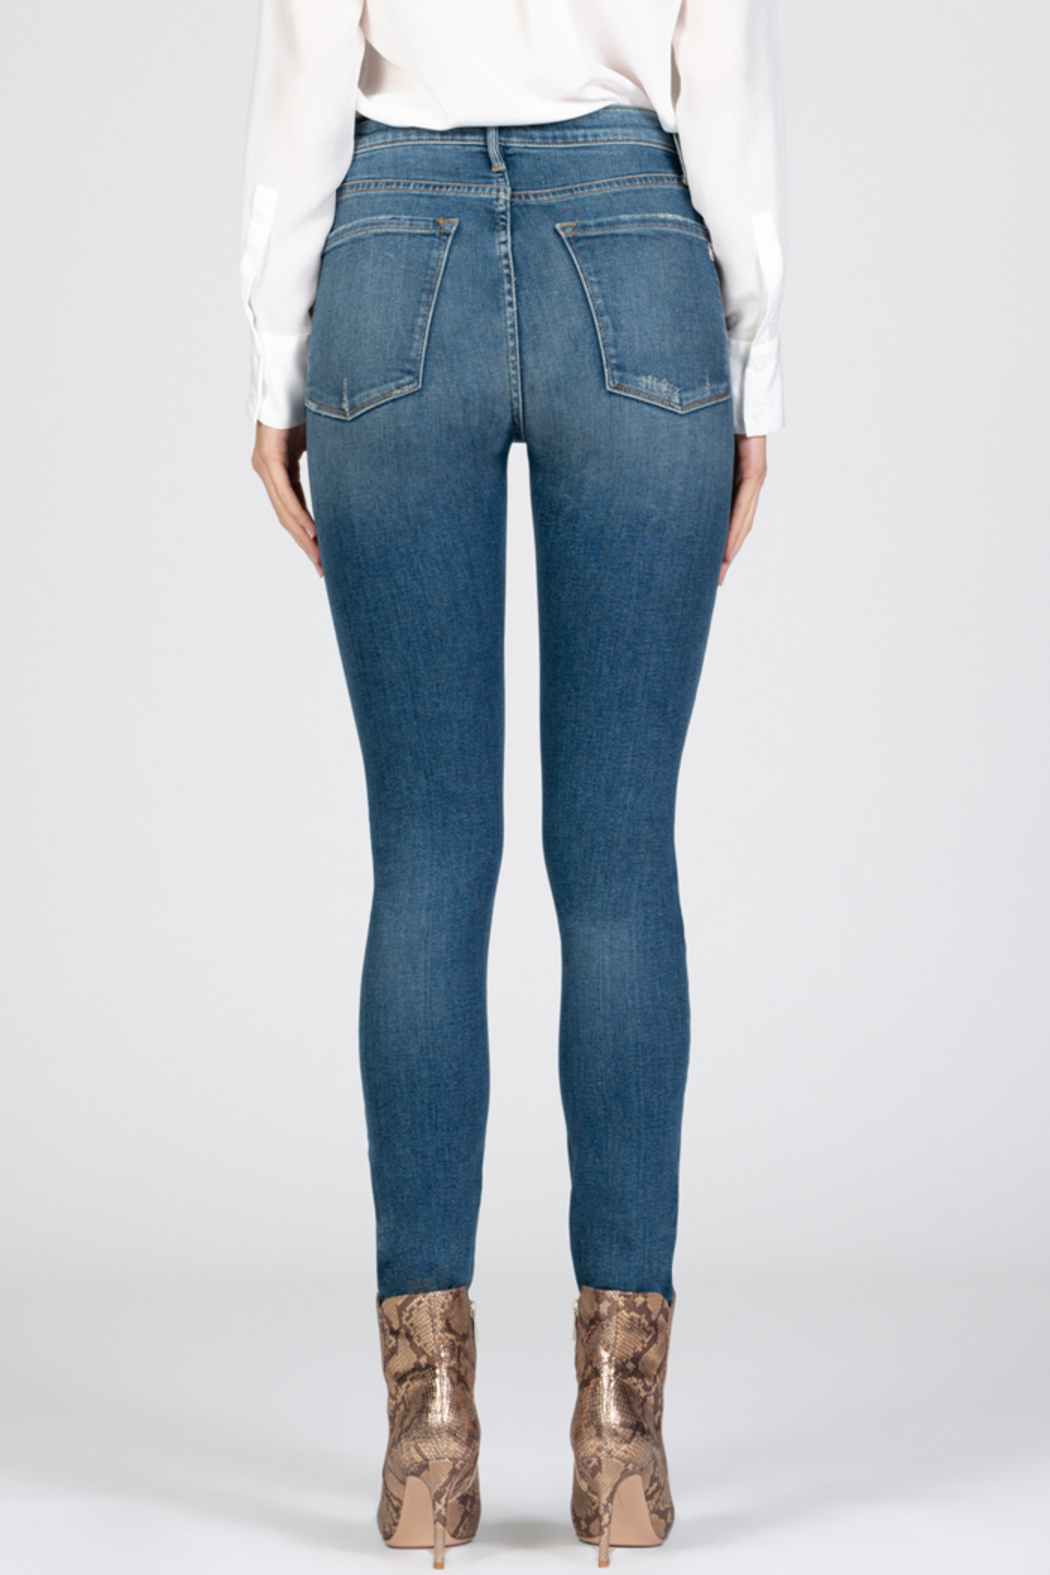 Black Orchid Denim Black Orchid Christie Buttonfly High Rise Skinny Jean - Back Cropped Image